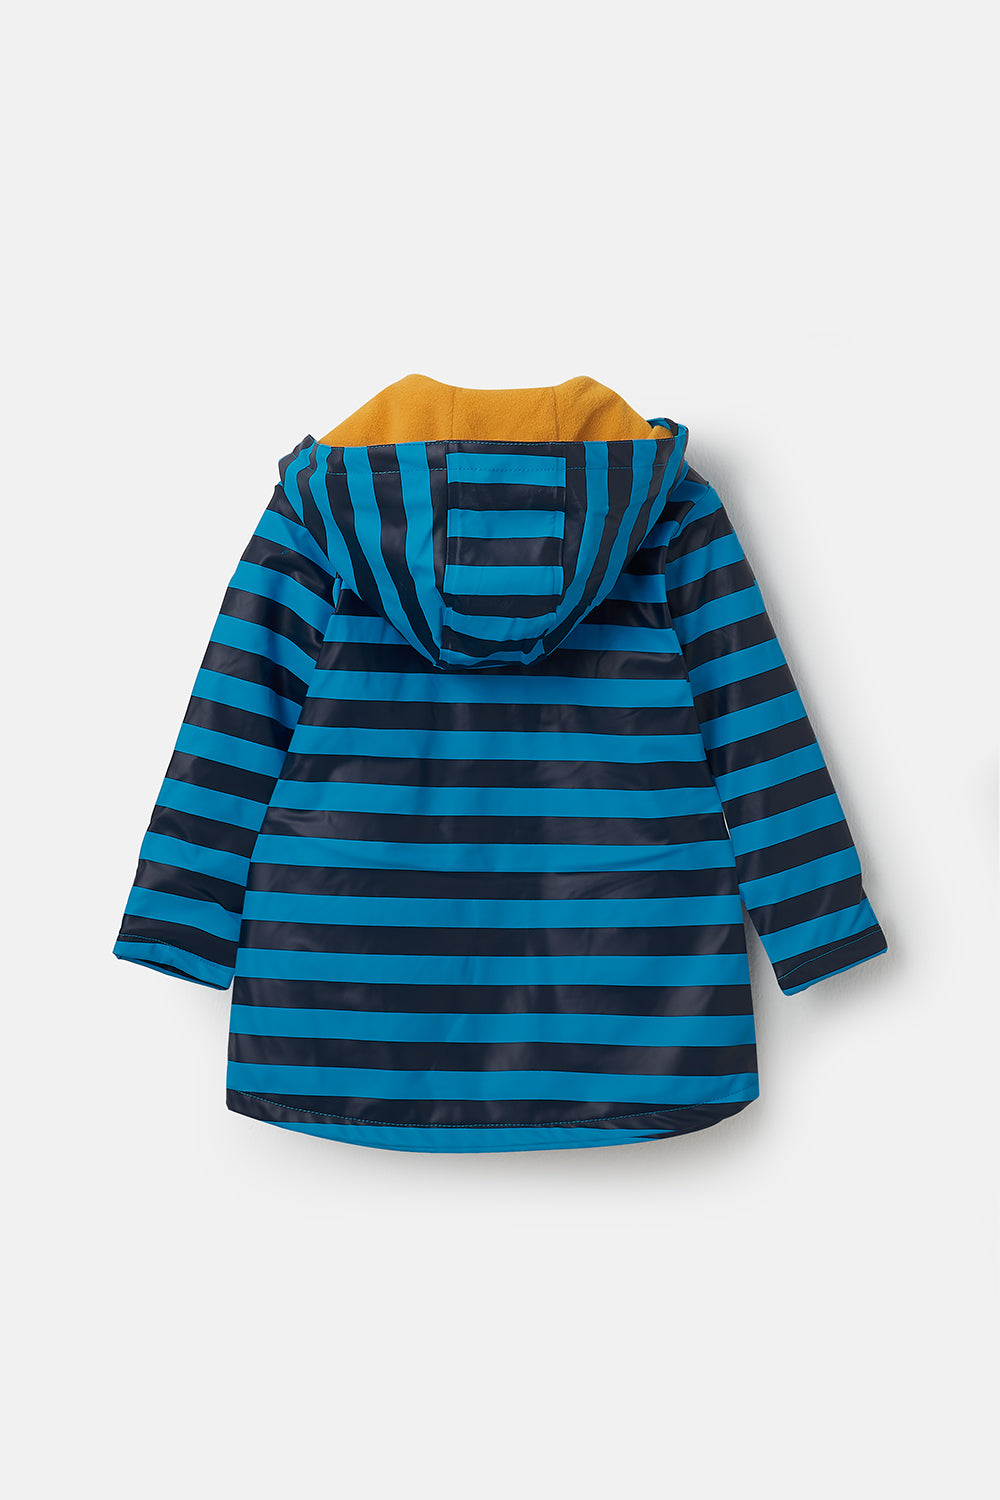 Lighthouse Adam Boys Waterproof Rubber Raincoat - Blue Navy Stripe